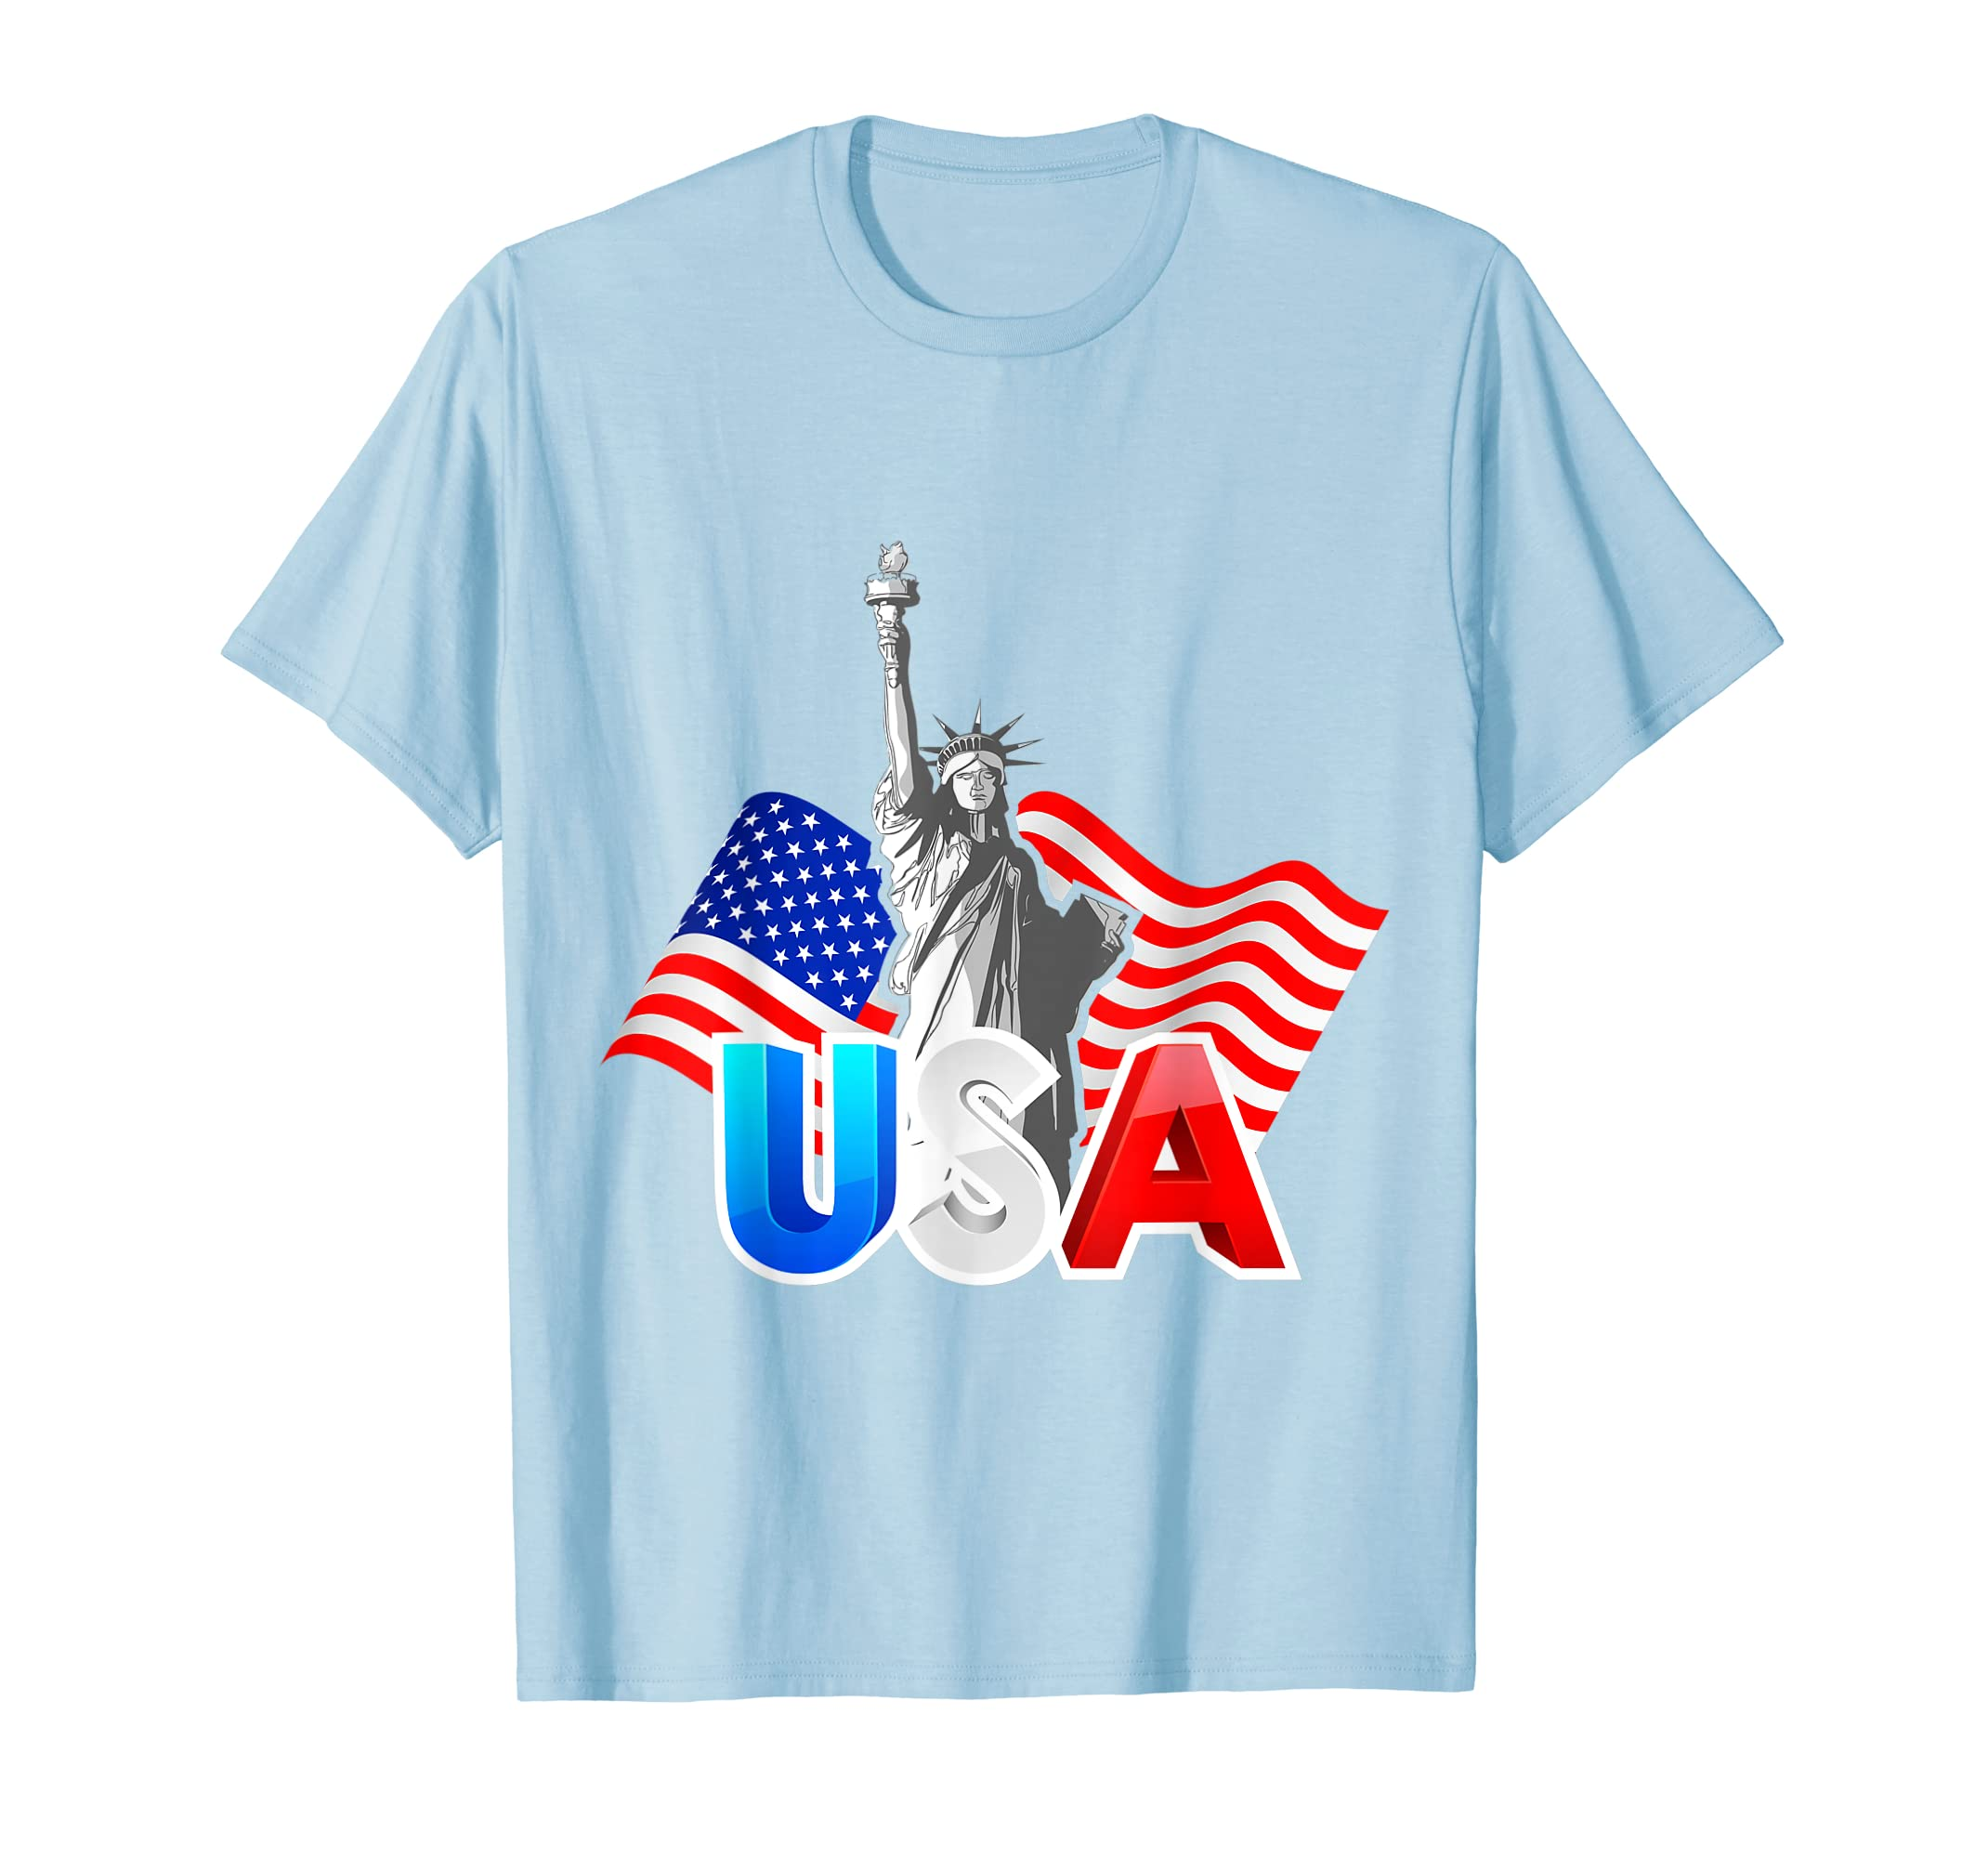 Emancipation Day in USA t-shirt for USA Lincoln-SFL